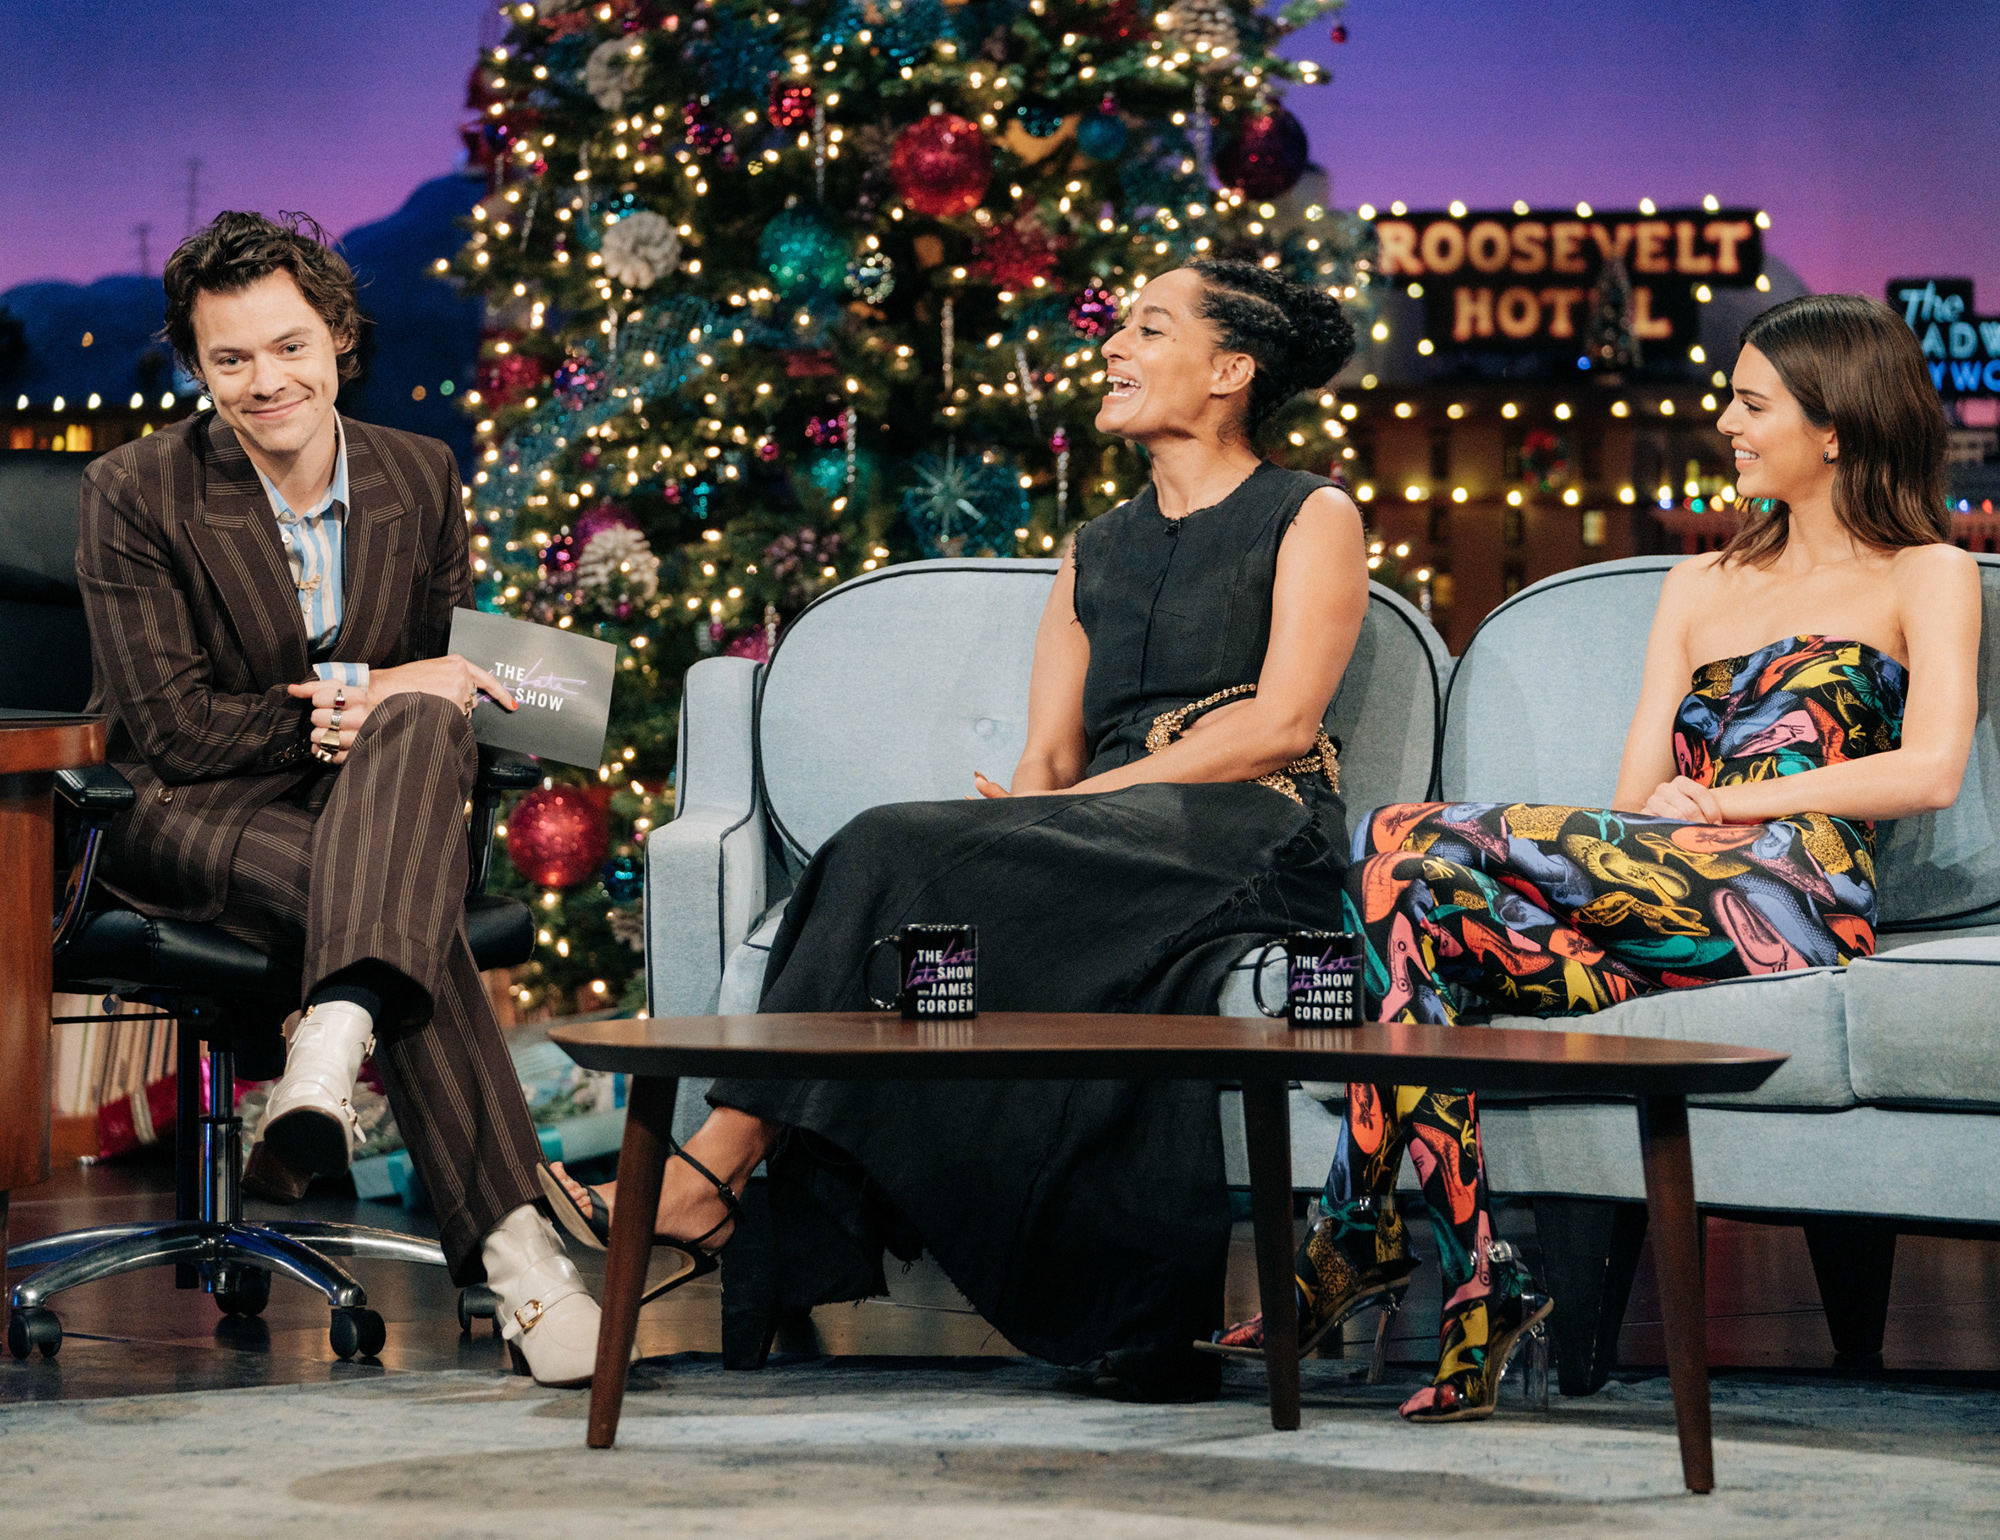 Harry Styles guest-hosts The Late Late Show with James Corden airing Tuesday, December 10, 2019, with guests Tracee Ellis Ross and Kendall Jenner